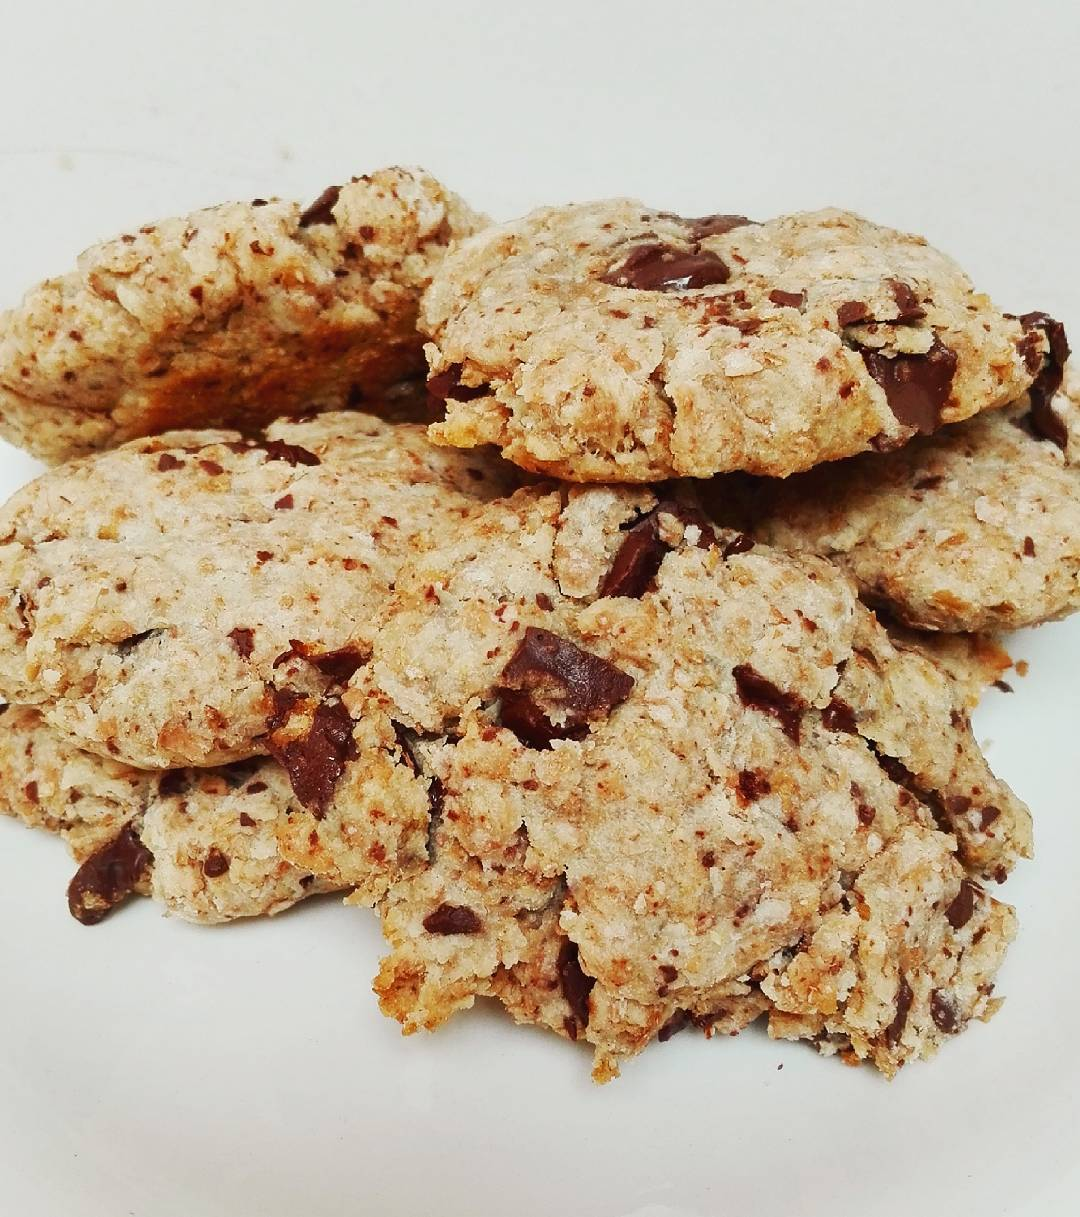 chocolate chip oatmeal cookies by @healthyhes